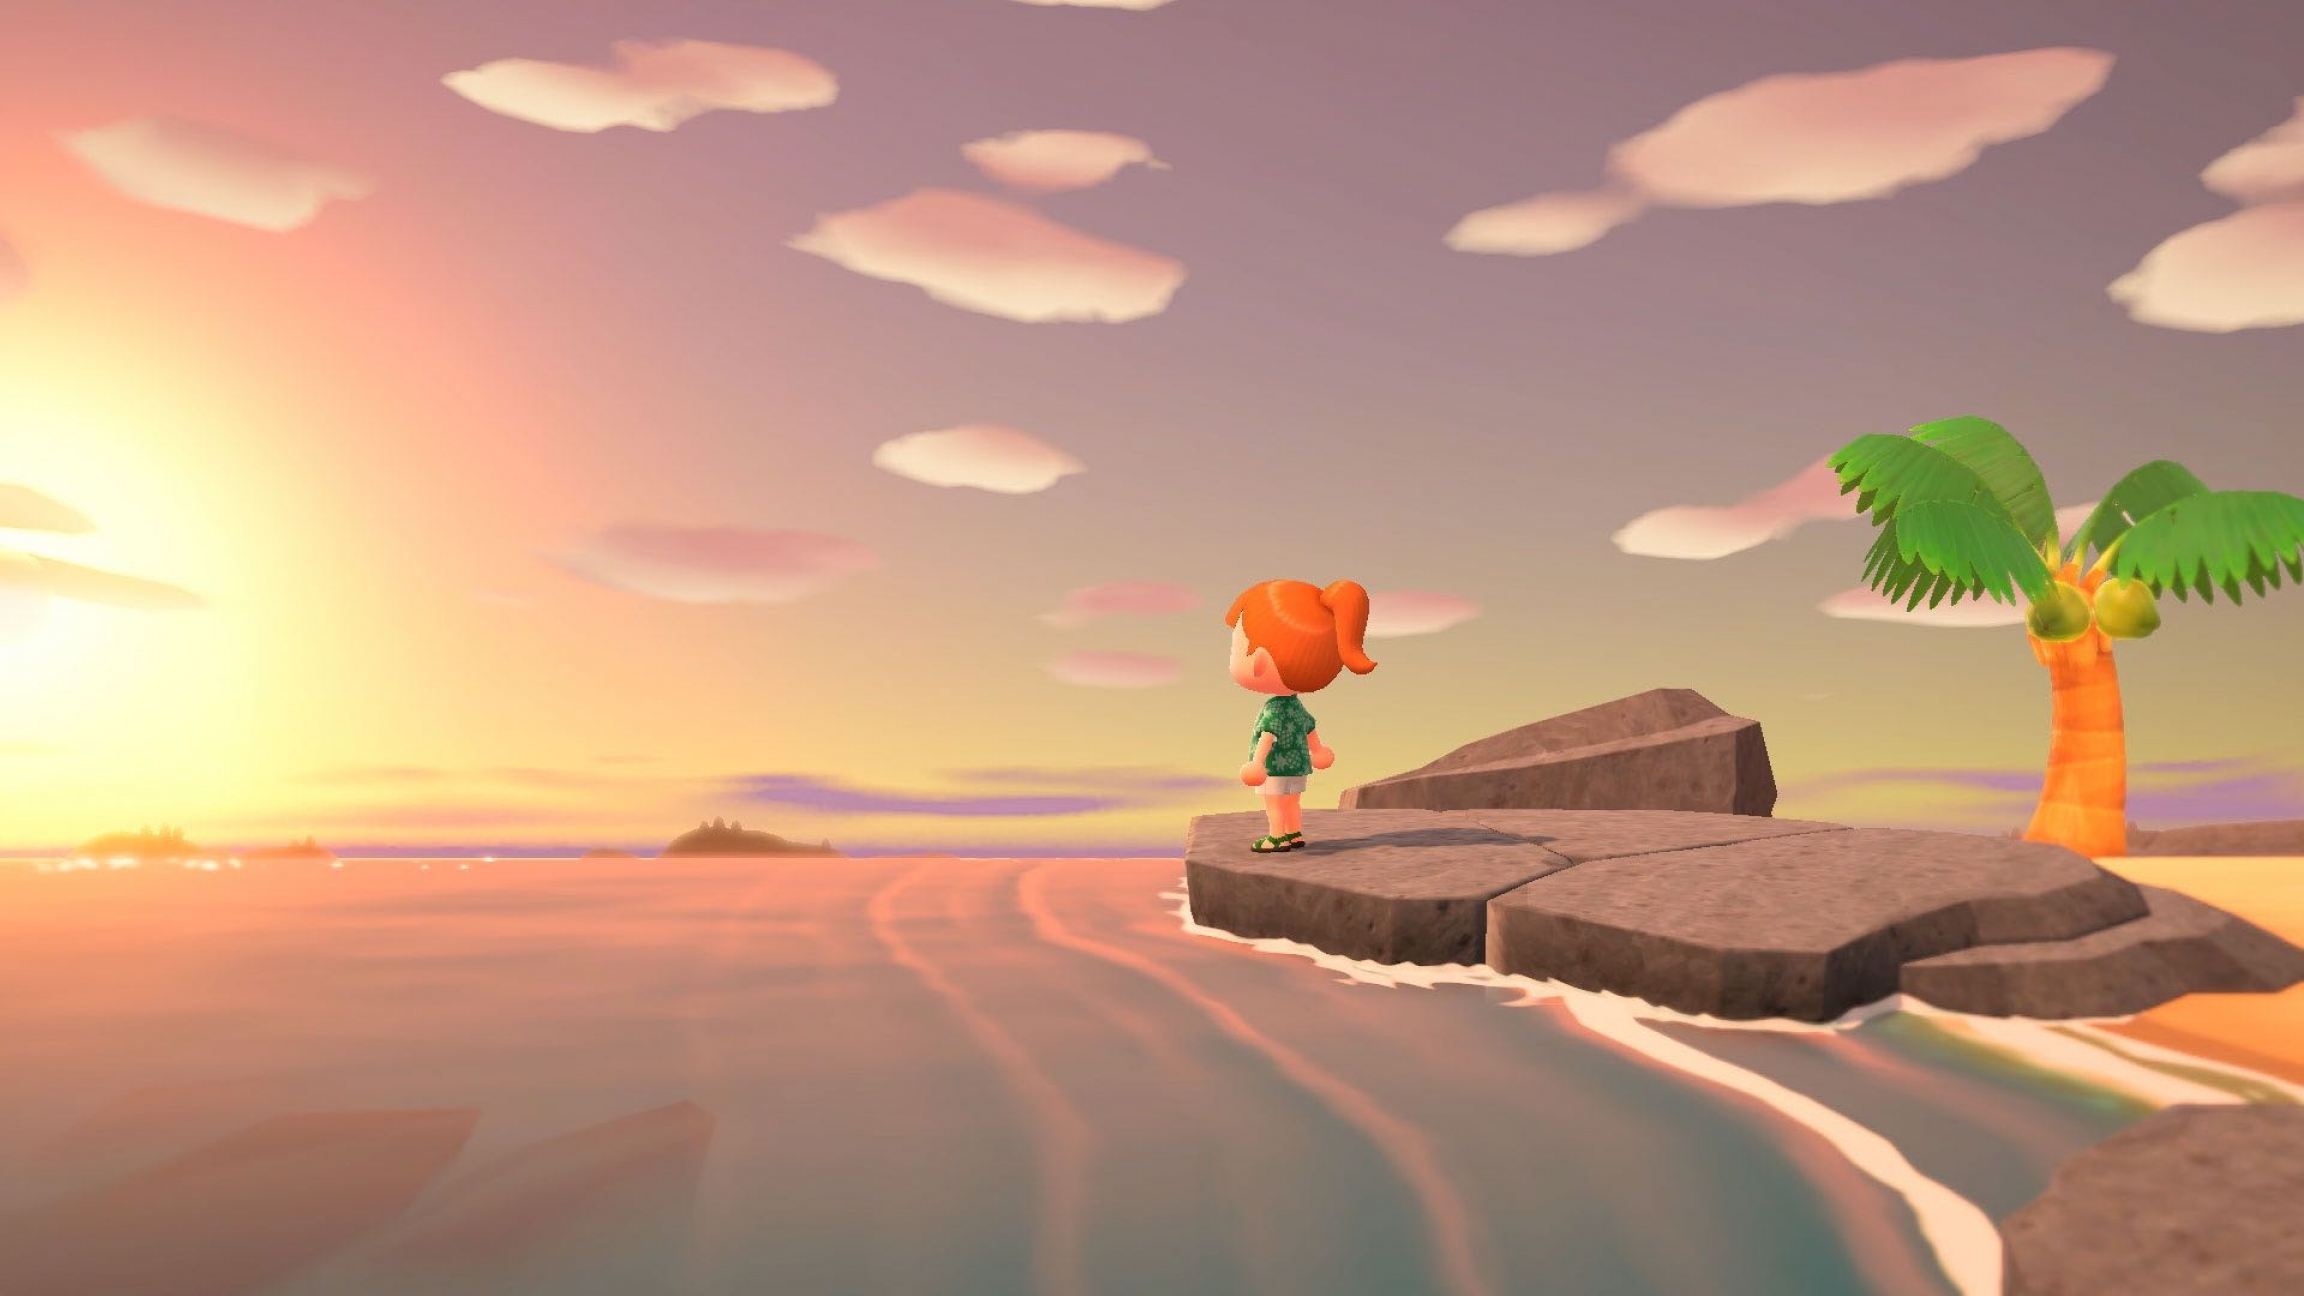 A scene from Animal Crossing: New Horizons.